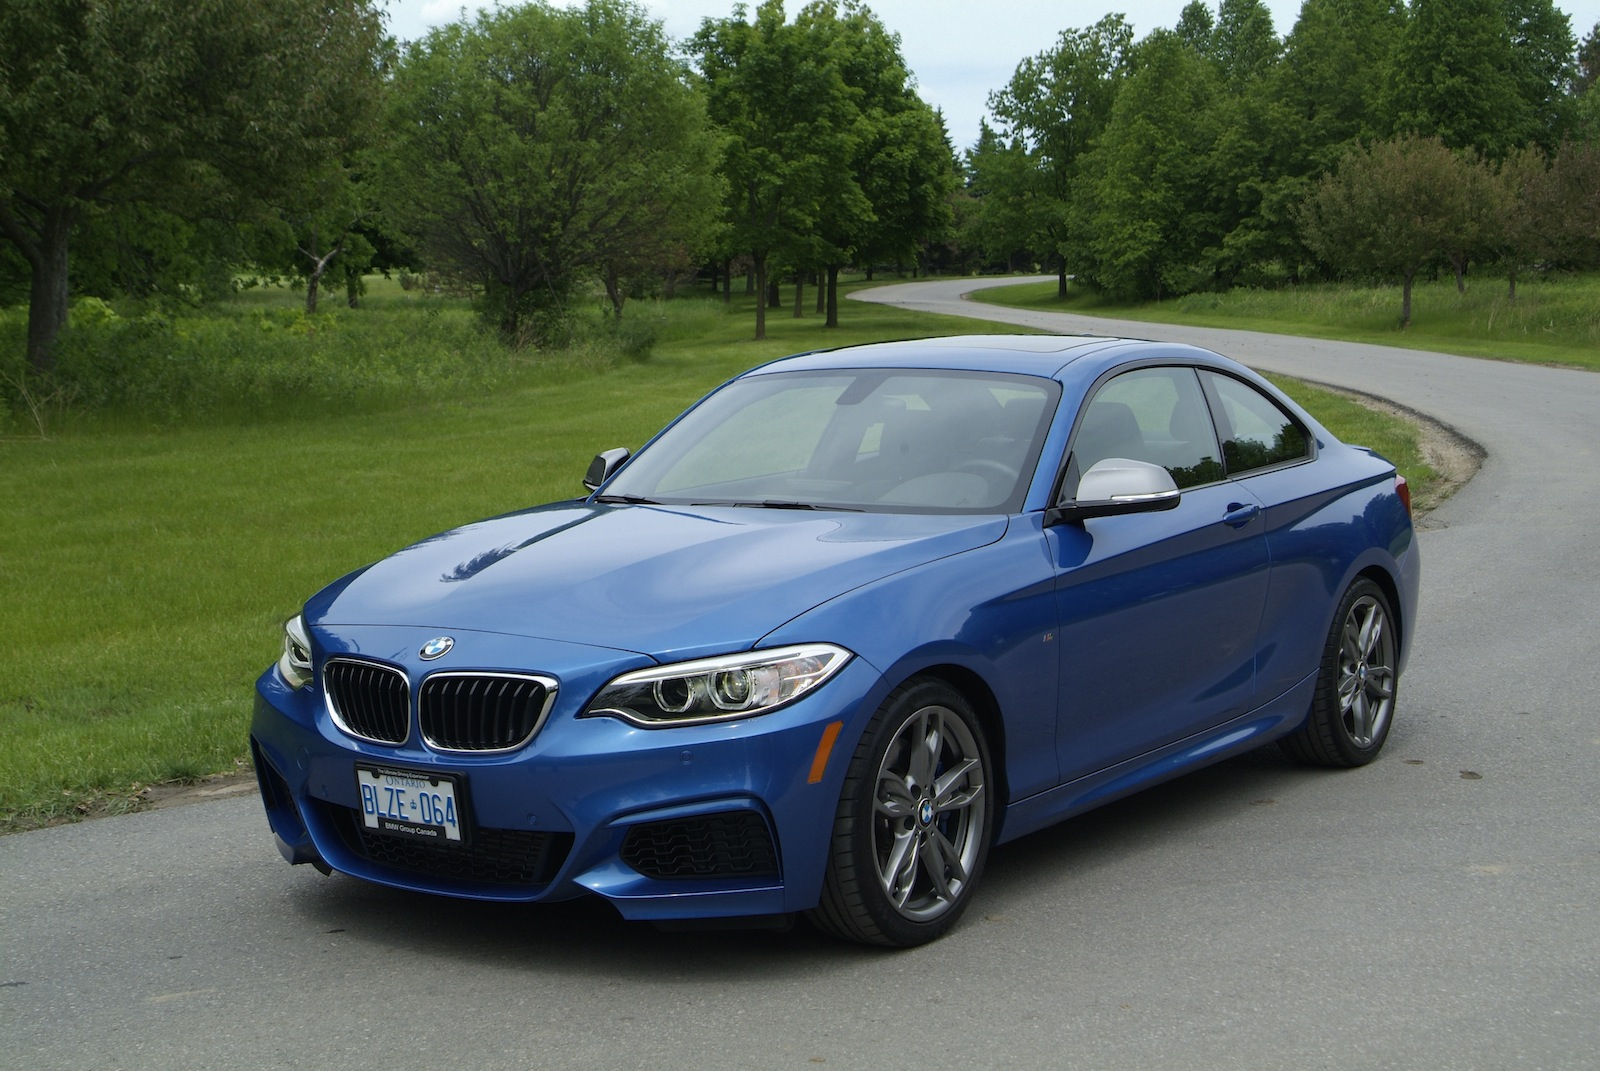 BMW Mi Review Cars Photos Test Drives And Reviews - 2014 bmw m235i